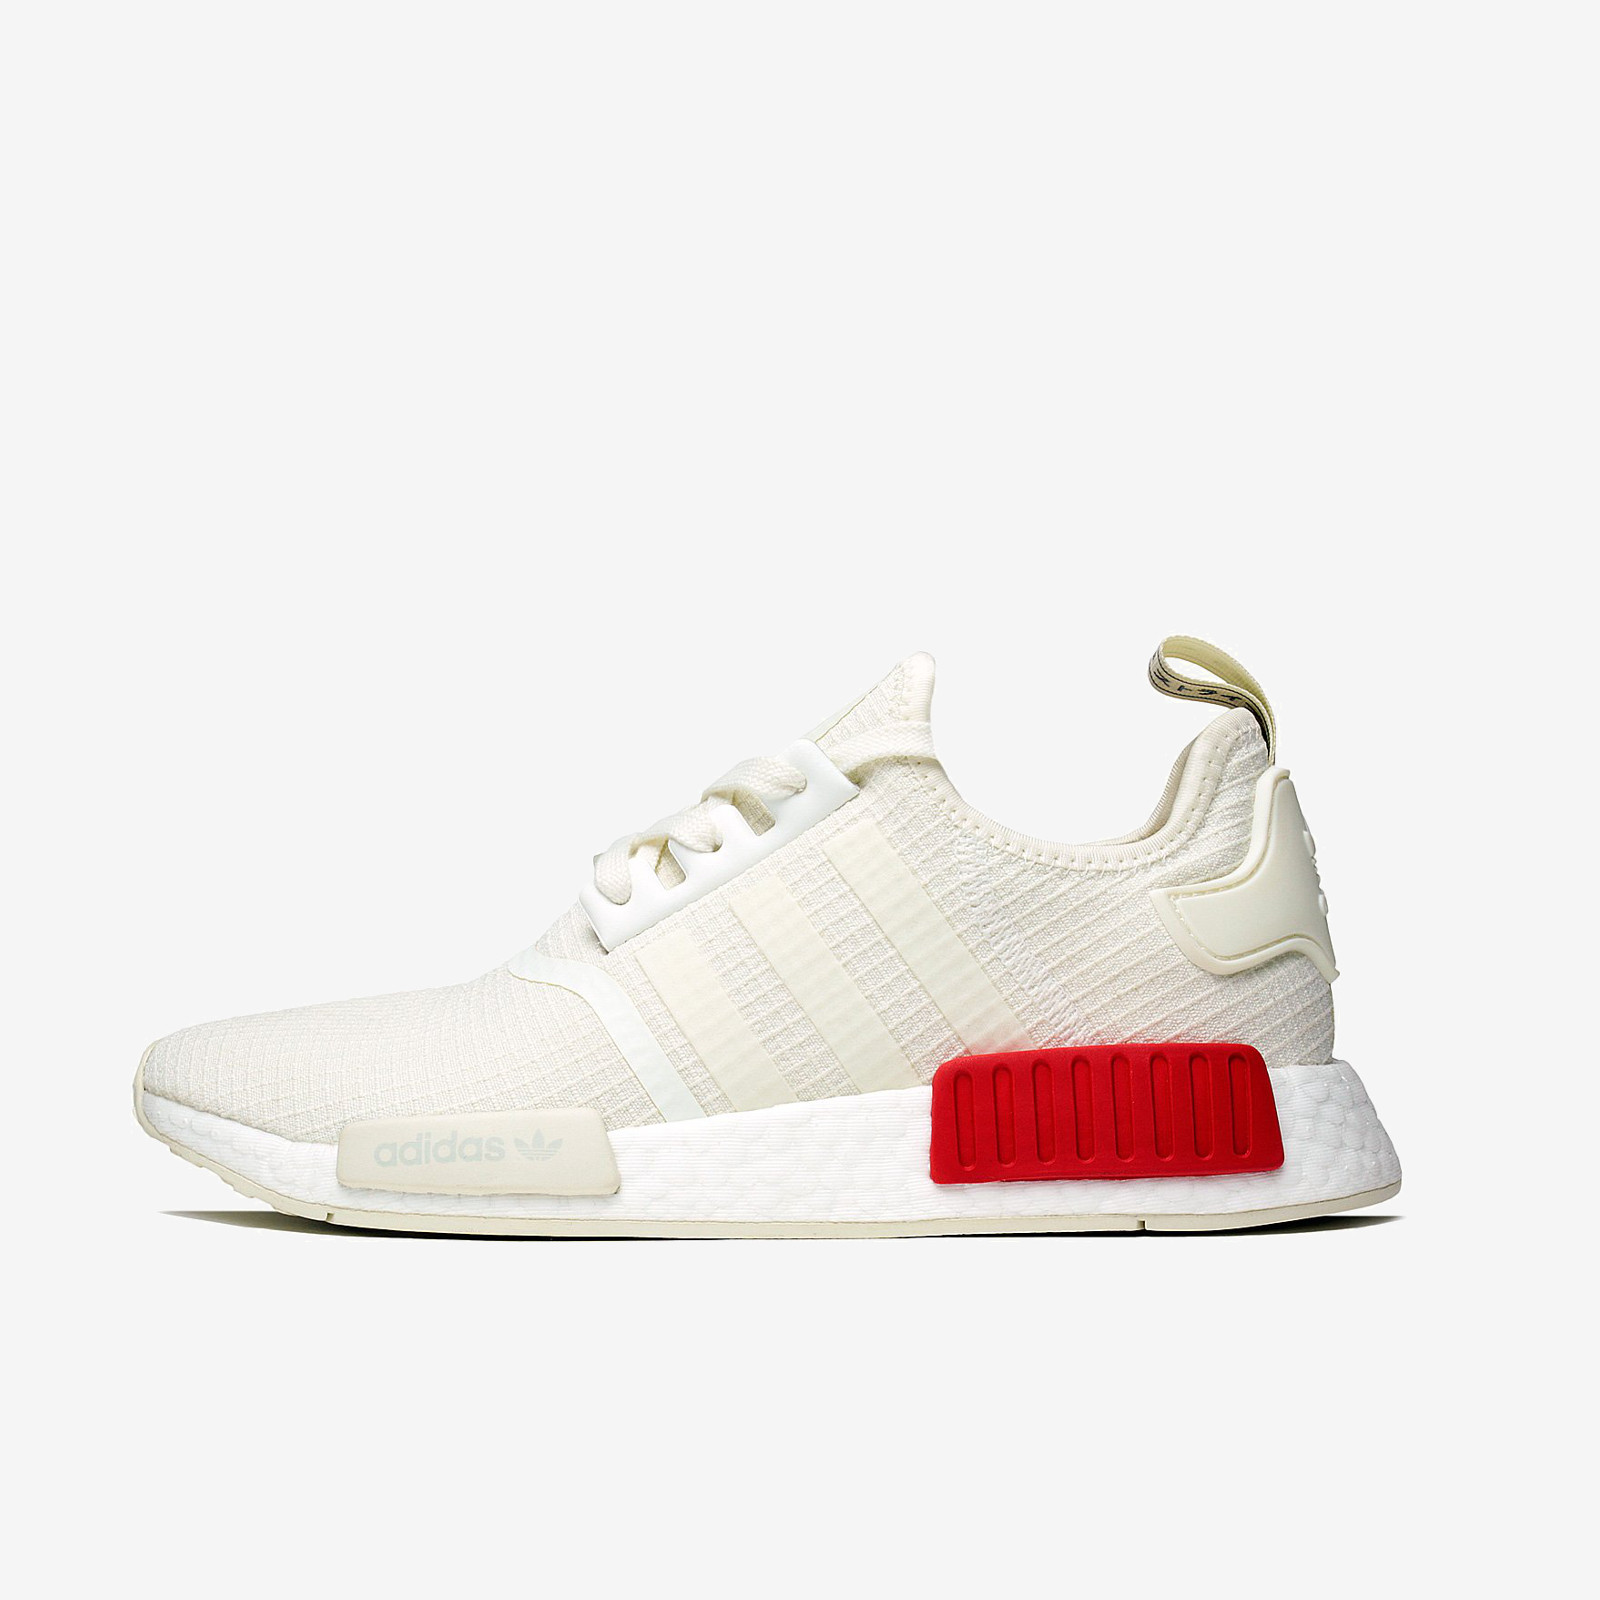 free shipping 5df48 b0072 Details about ADIDAS NMD R1 B37619 OFF-WHITE WHITE LUSH RED